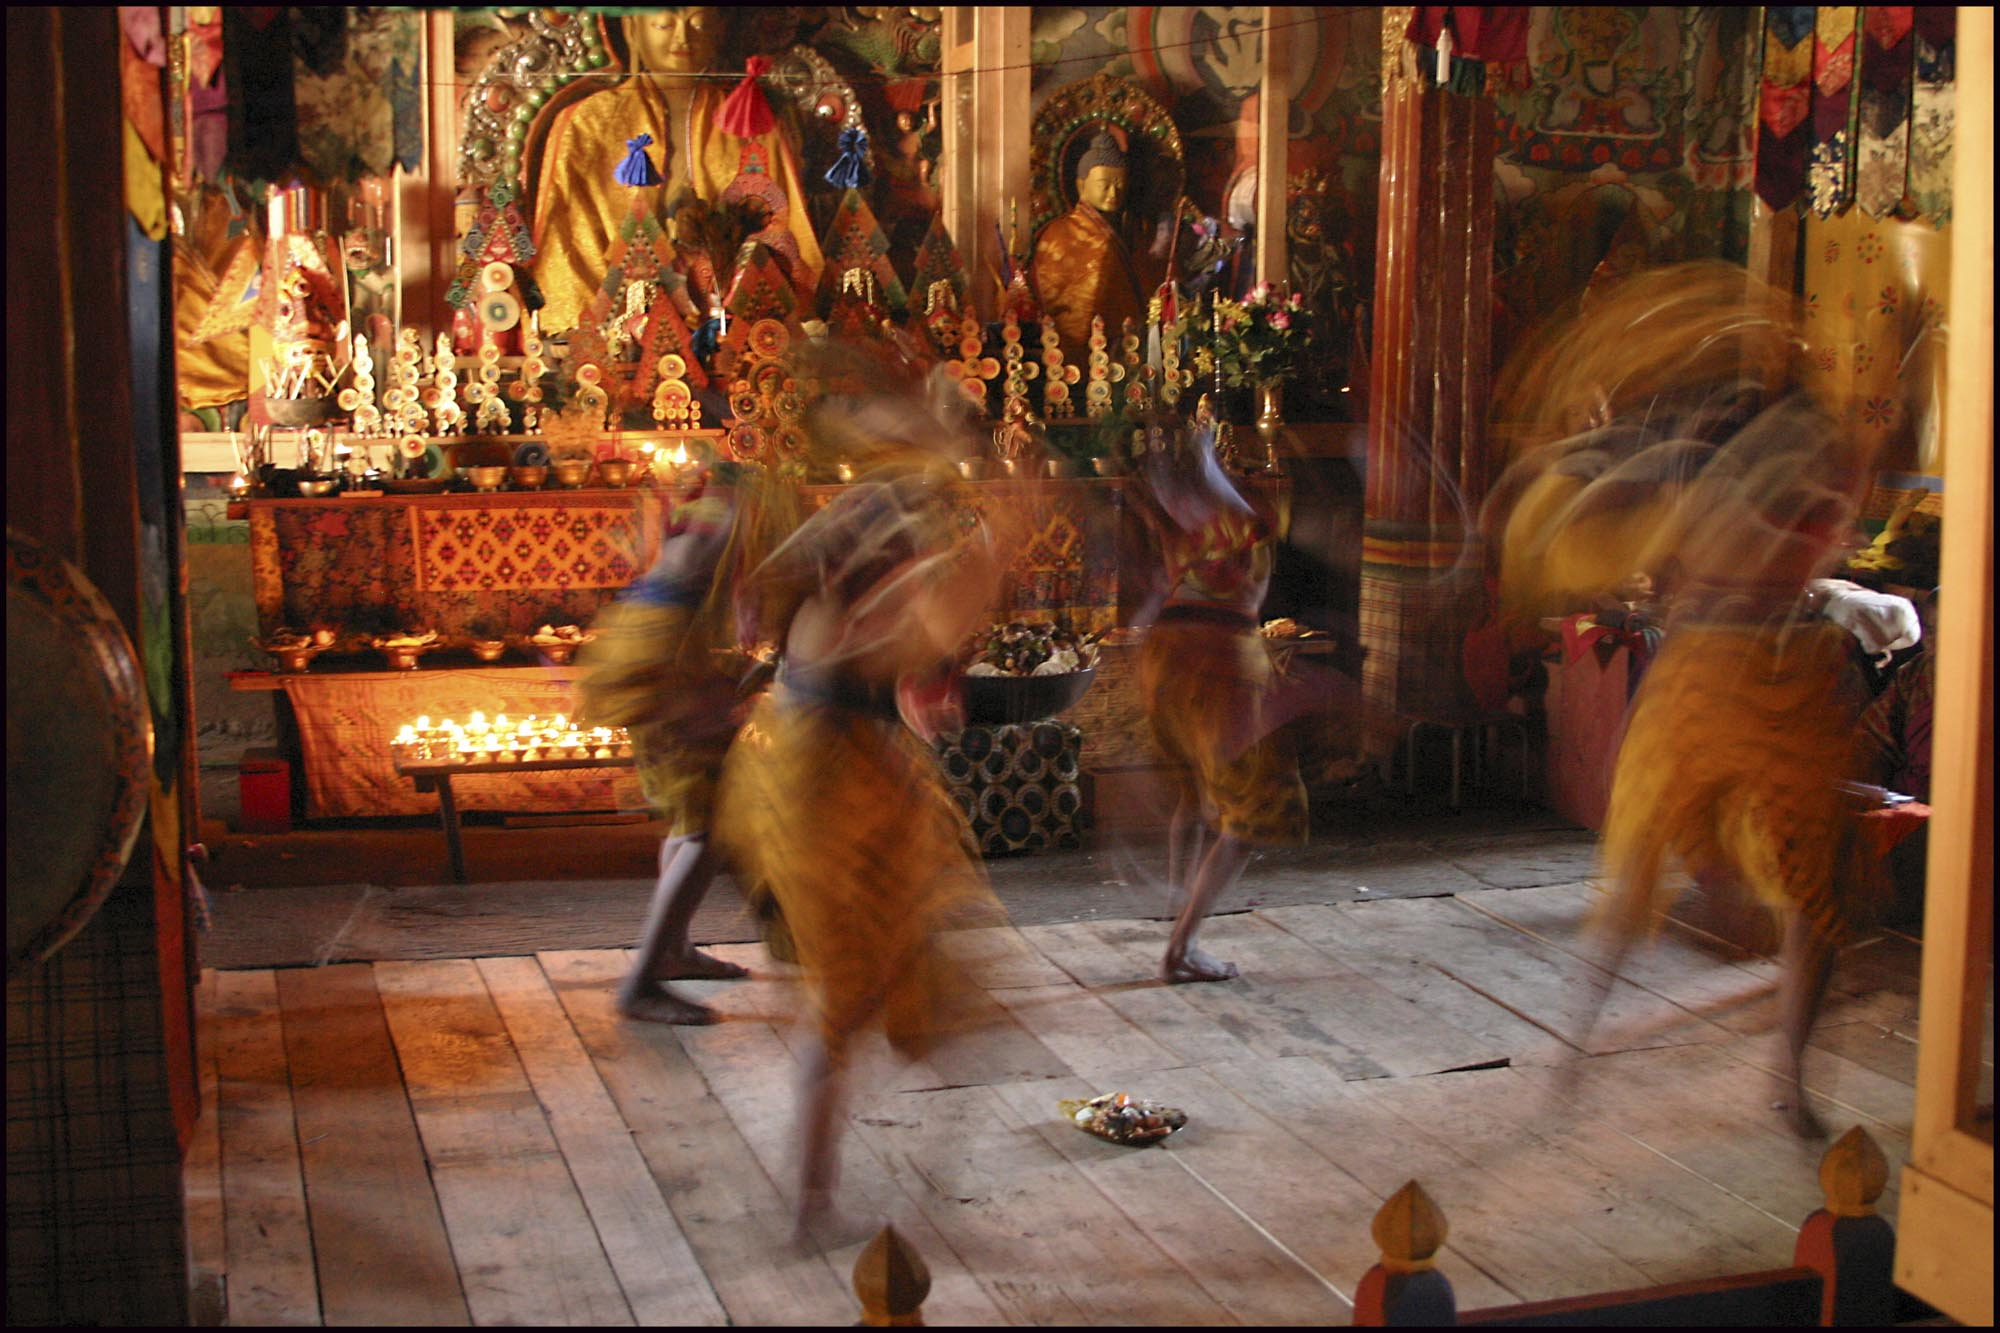 Shingkhar_Temple_Dancers_(1).jpg